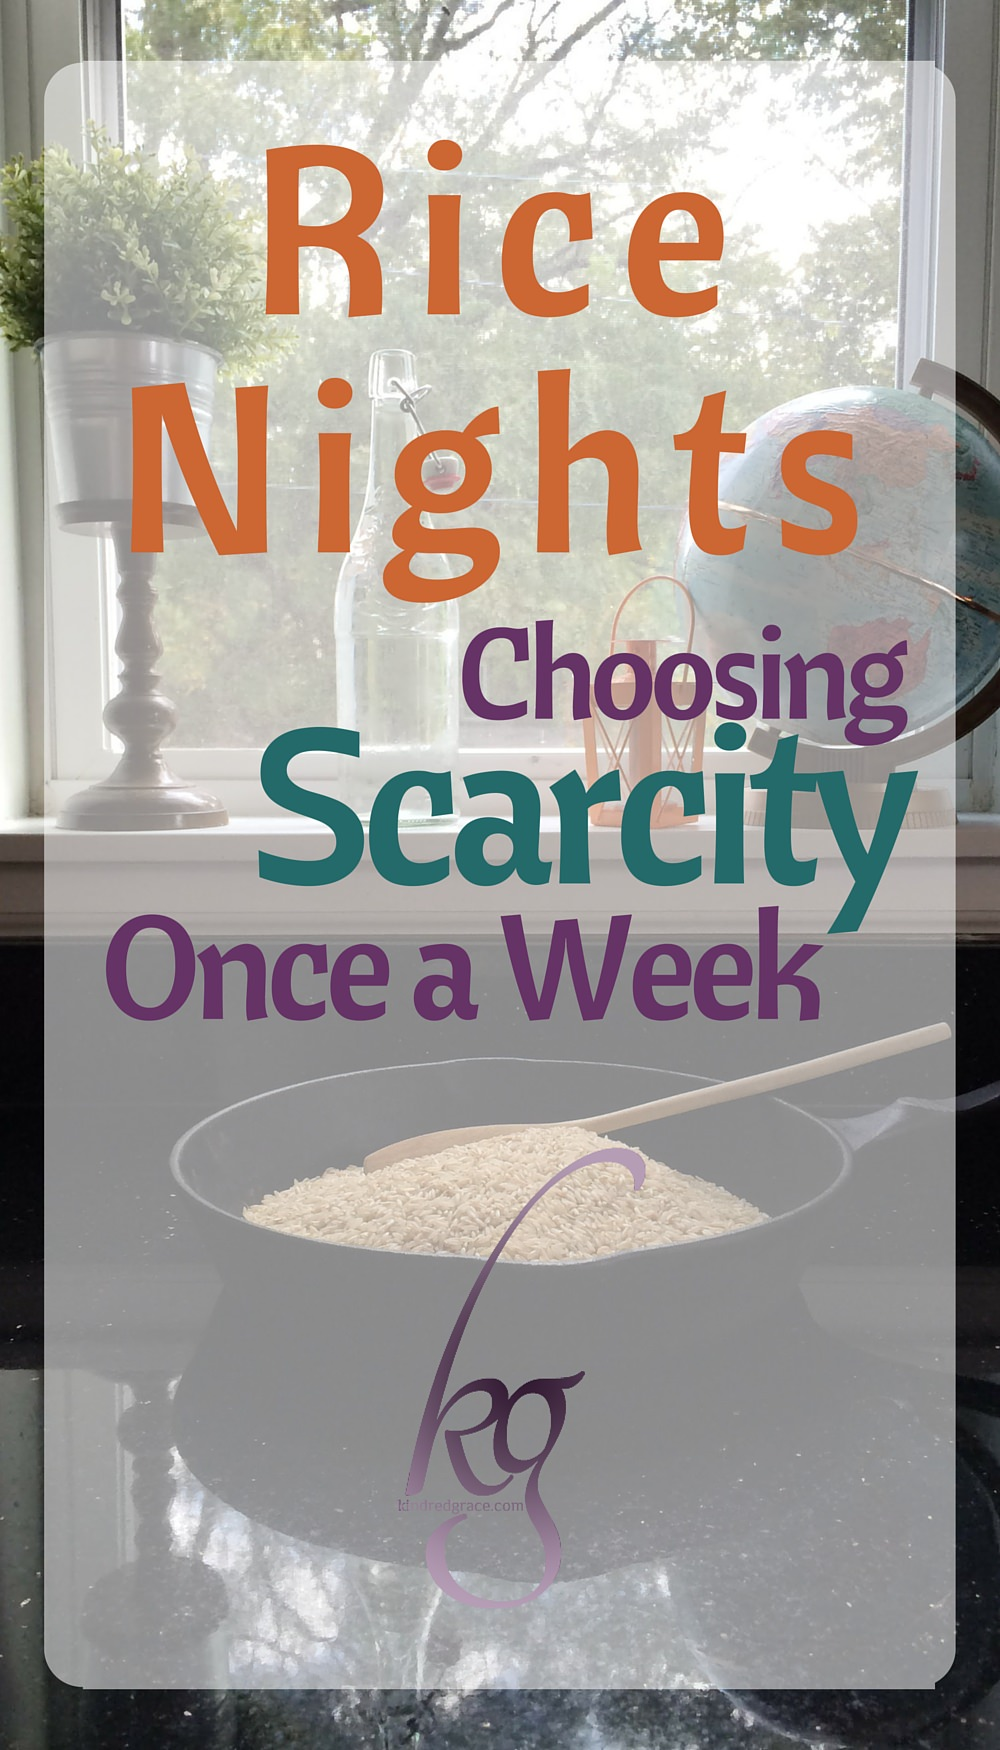 Our simple rice nights are unimportant in the grander scheme of world relief and poverty, yes, but it's a bit like fasting from our plenty: a small reminder that we have so much. via @KindredGrace